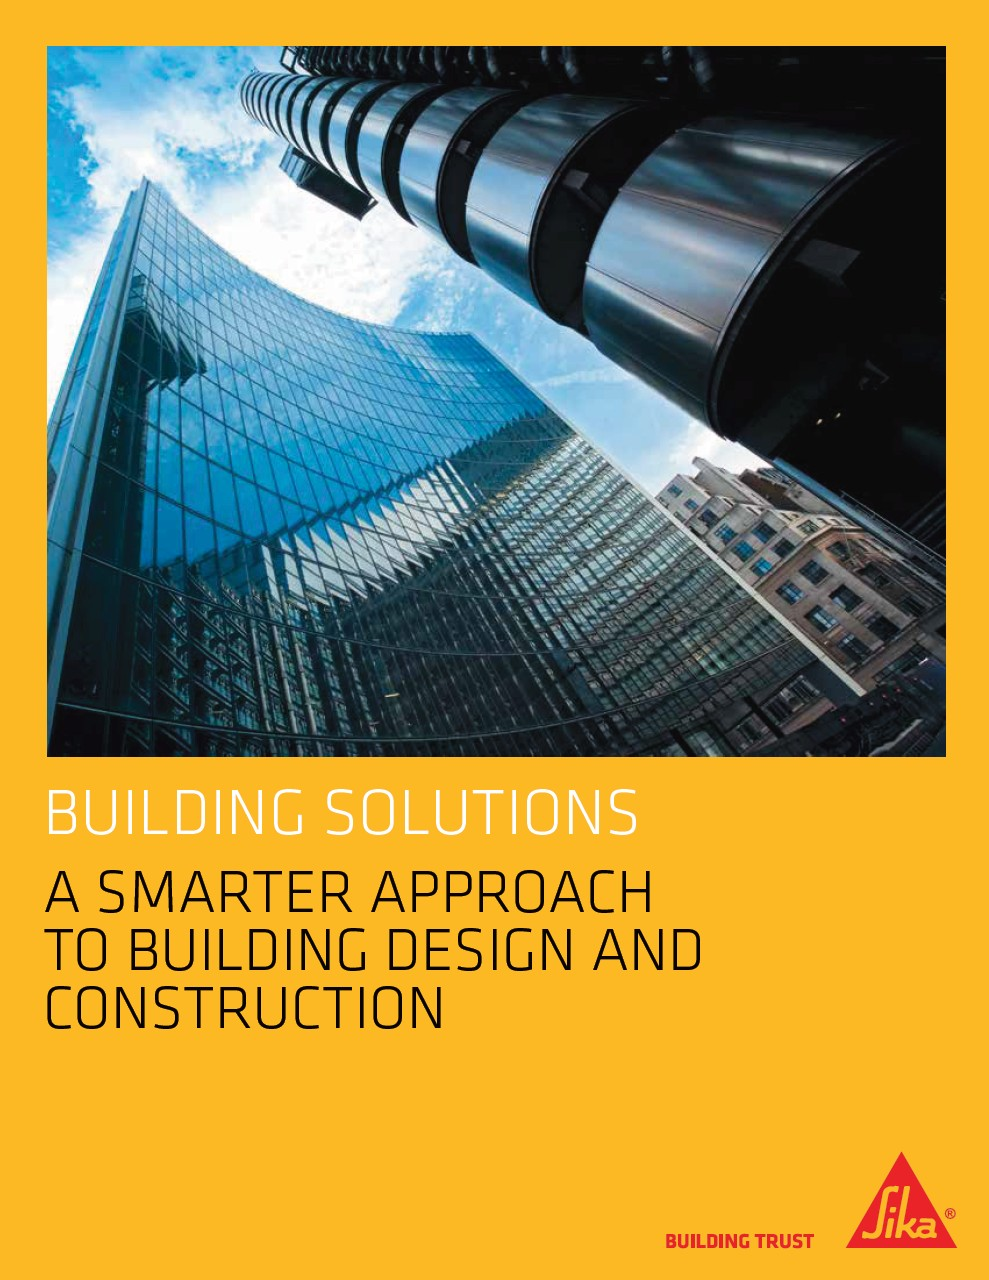 Download our Building Solutions Brochure!